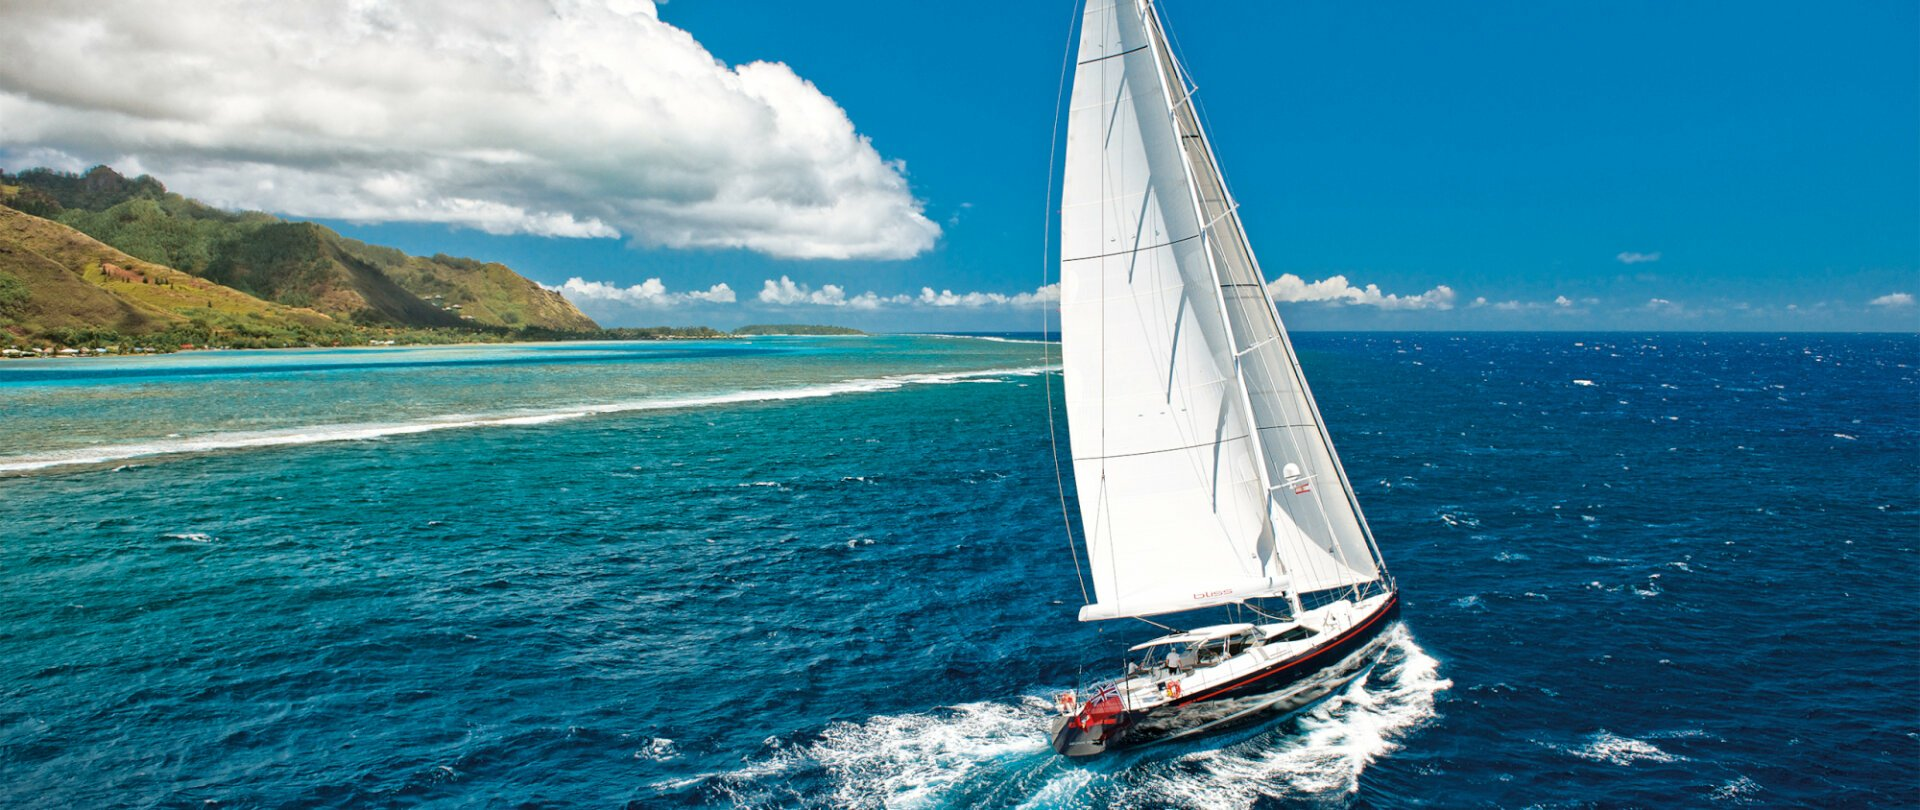 Sailing yacht passing by islands in the Seychelles